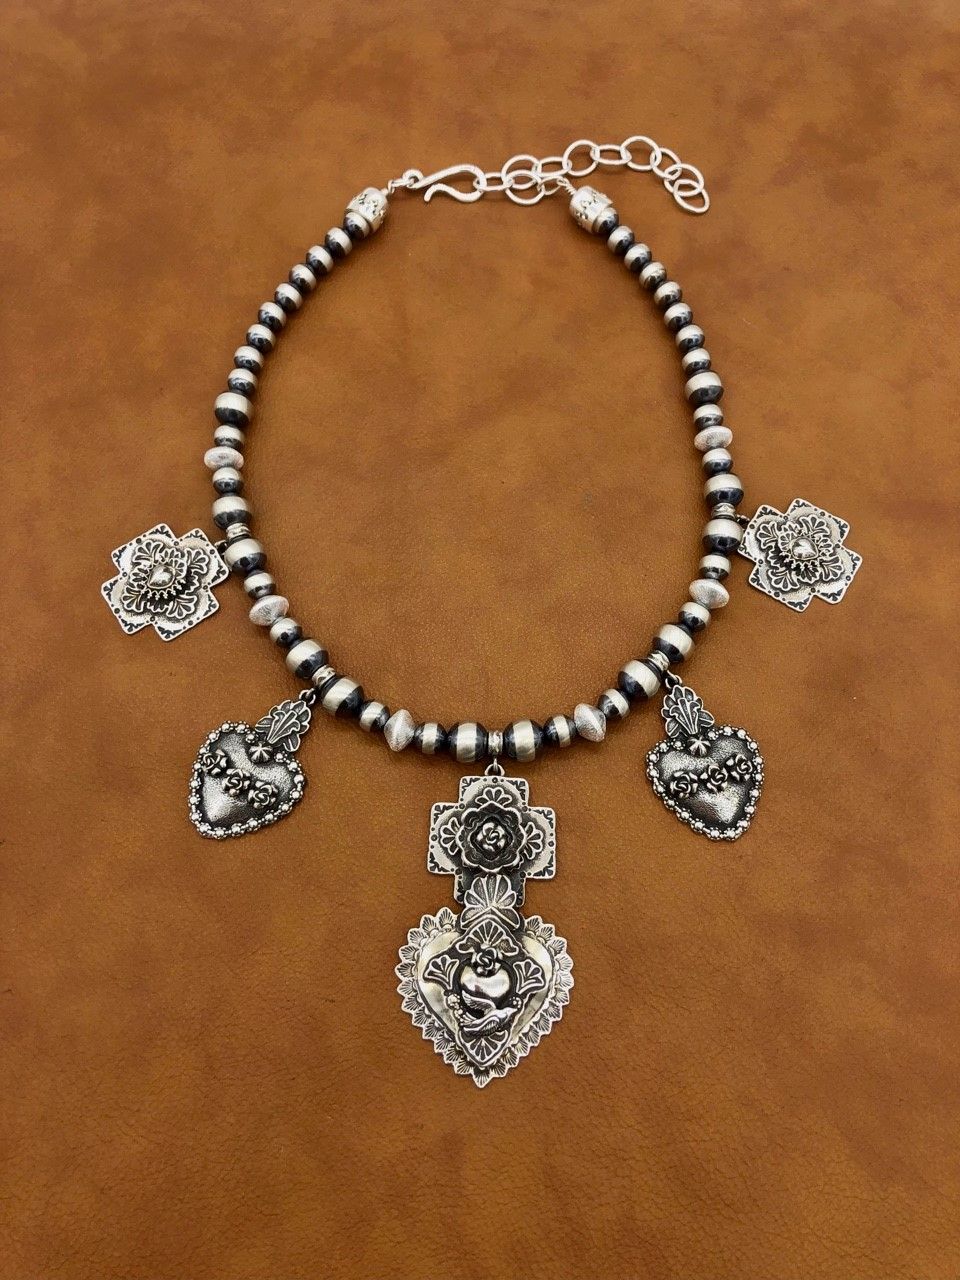 """""""Sacred Heart Necklace"""" by Gregory P Segura"""